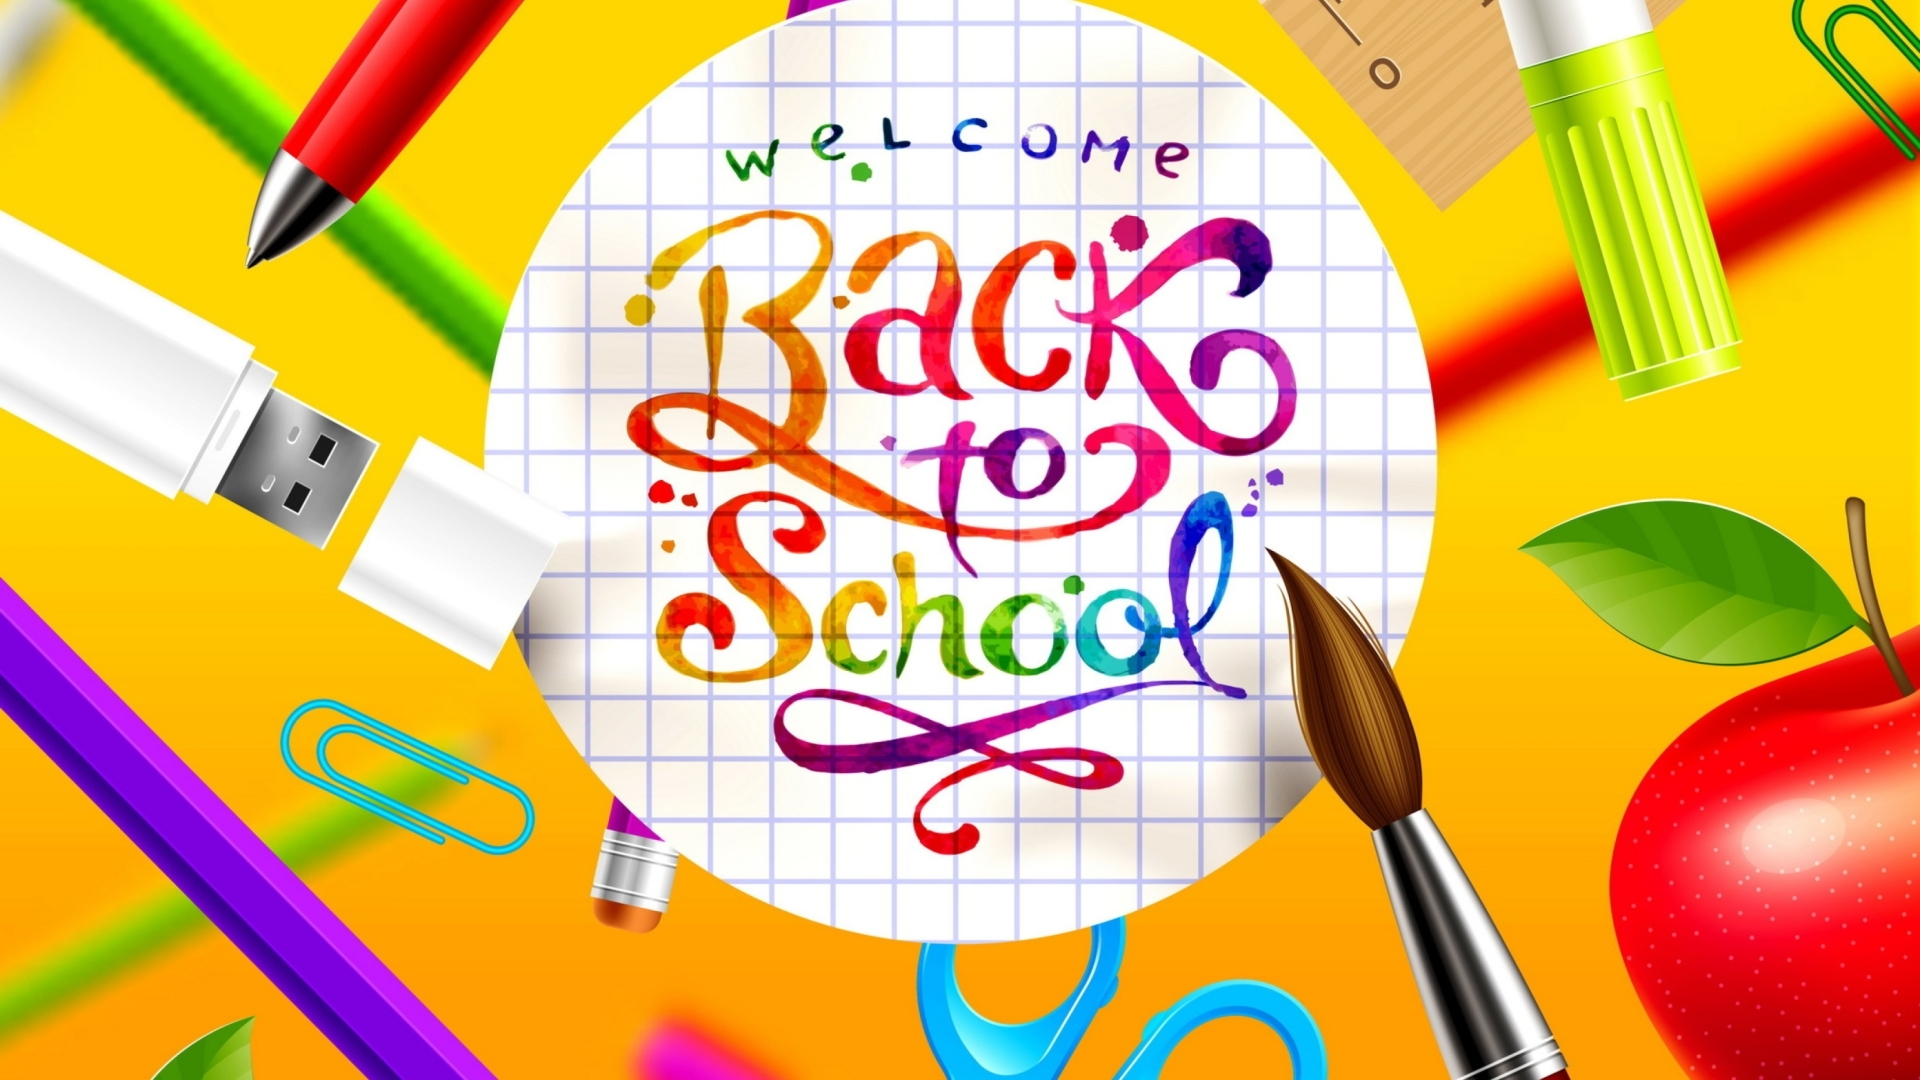 back to school wallpaper for desktop